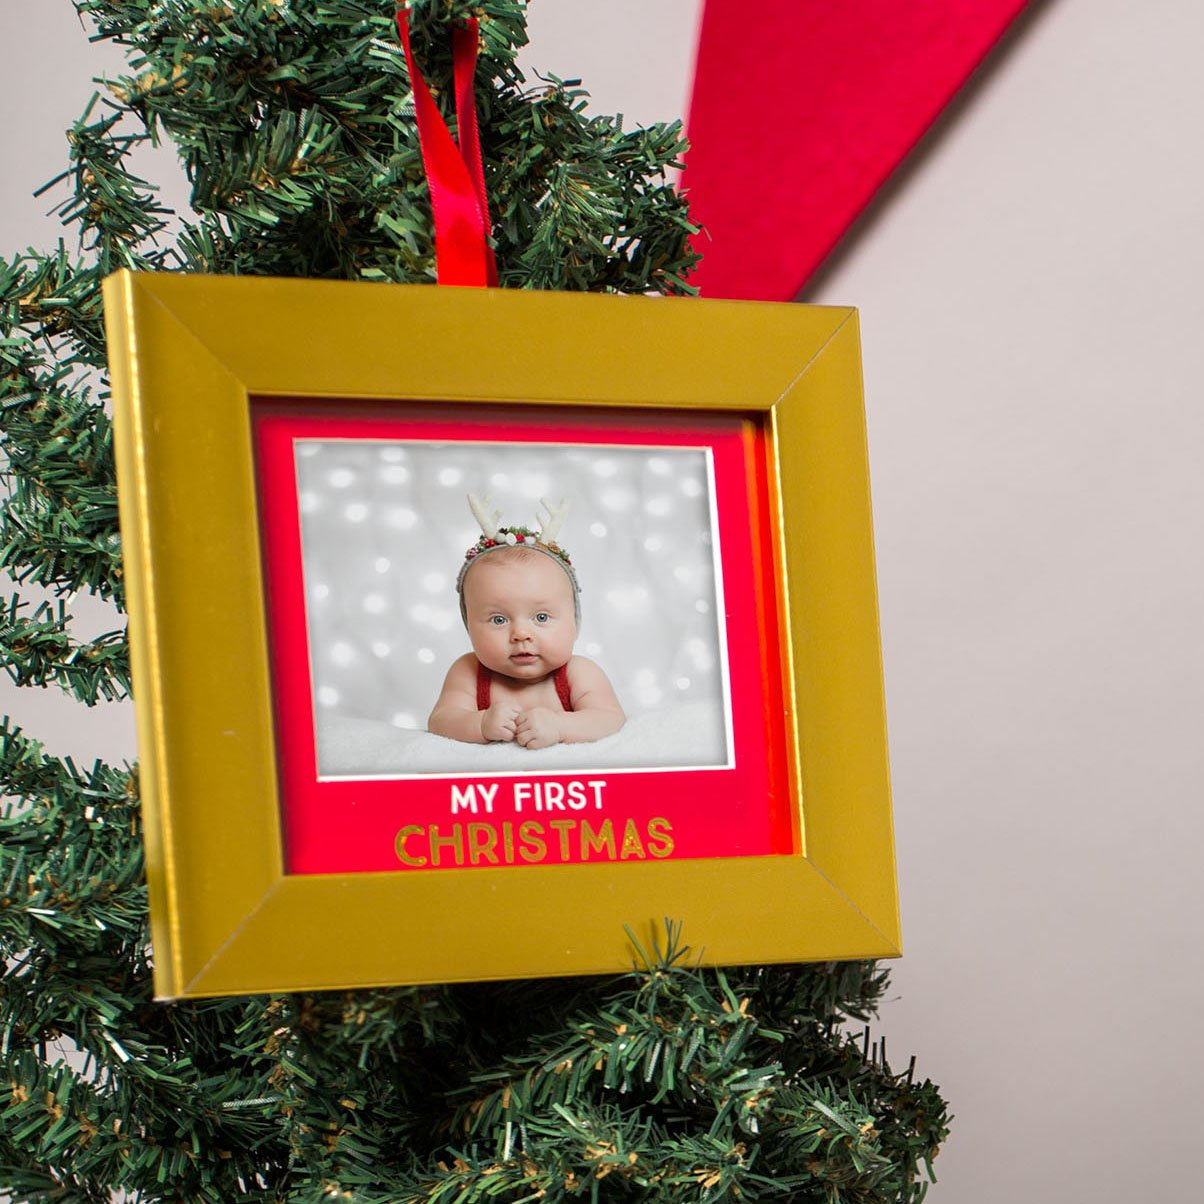 Holiday Gift Set Keepsake Holiday Frame and Photo Ornament Set Babys First Christmas Keepsake Lil Peach